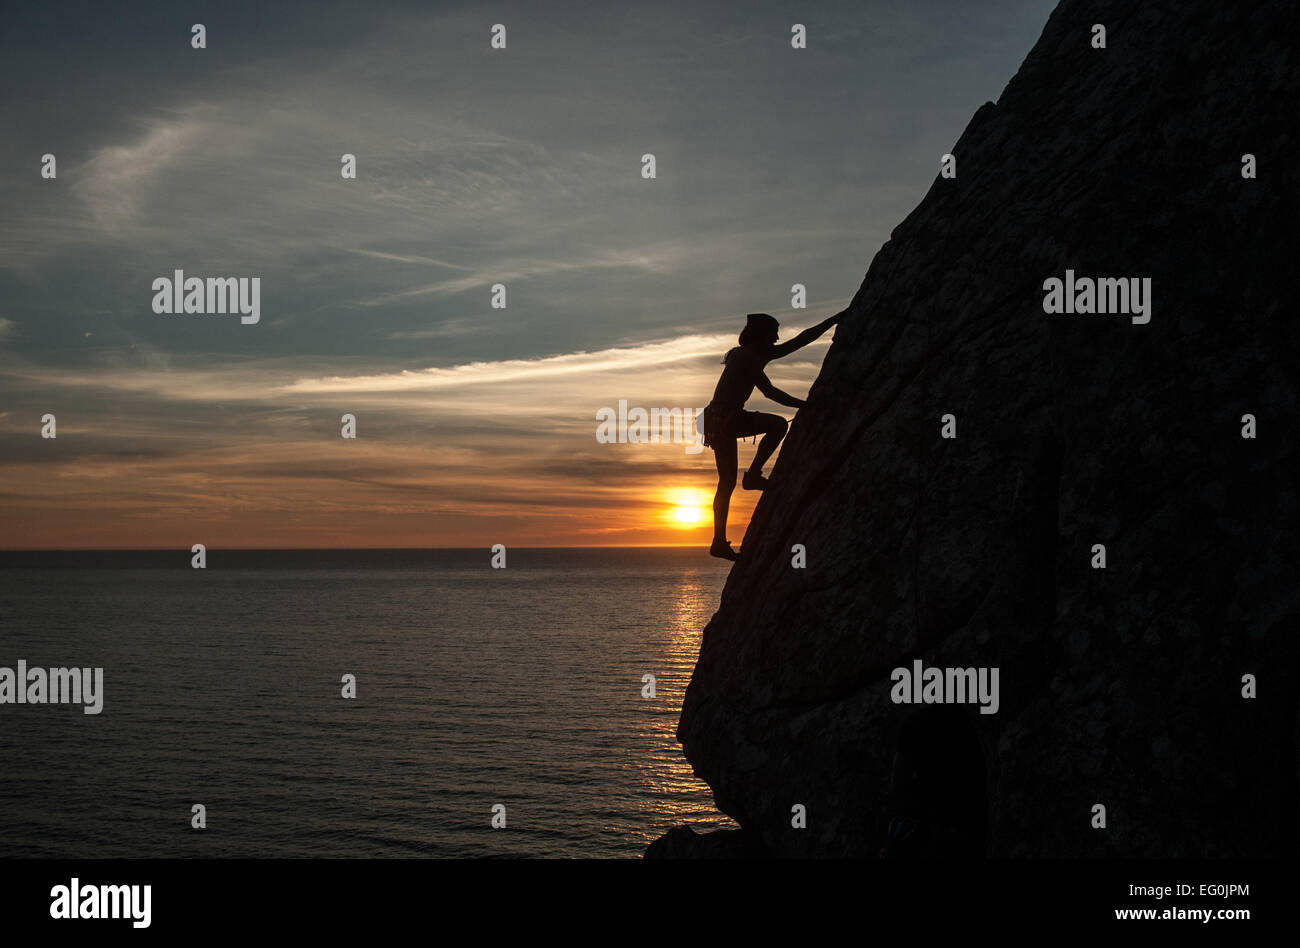 Silhouette of woman climbing cliff at sunset, Galicia, Spain - Stock Image